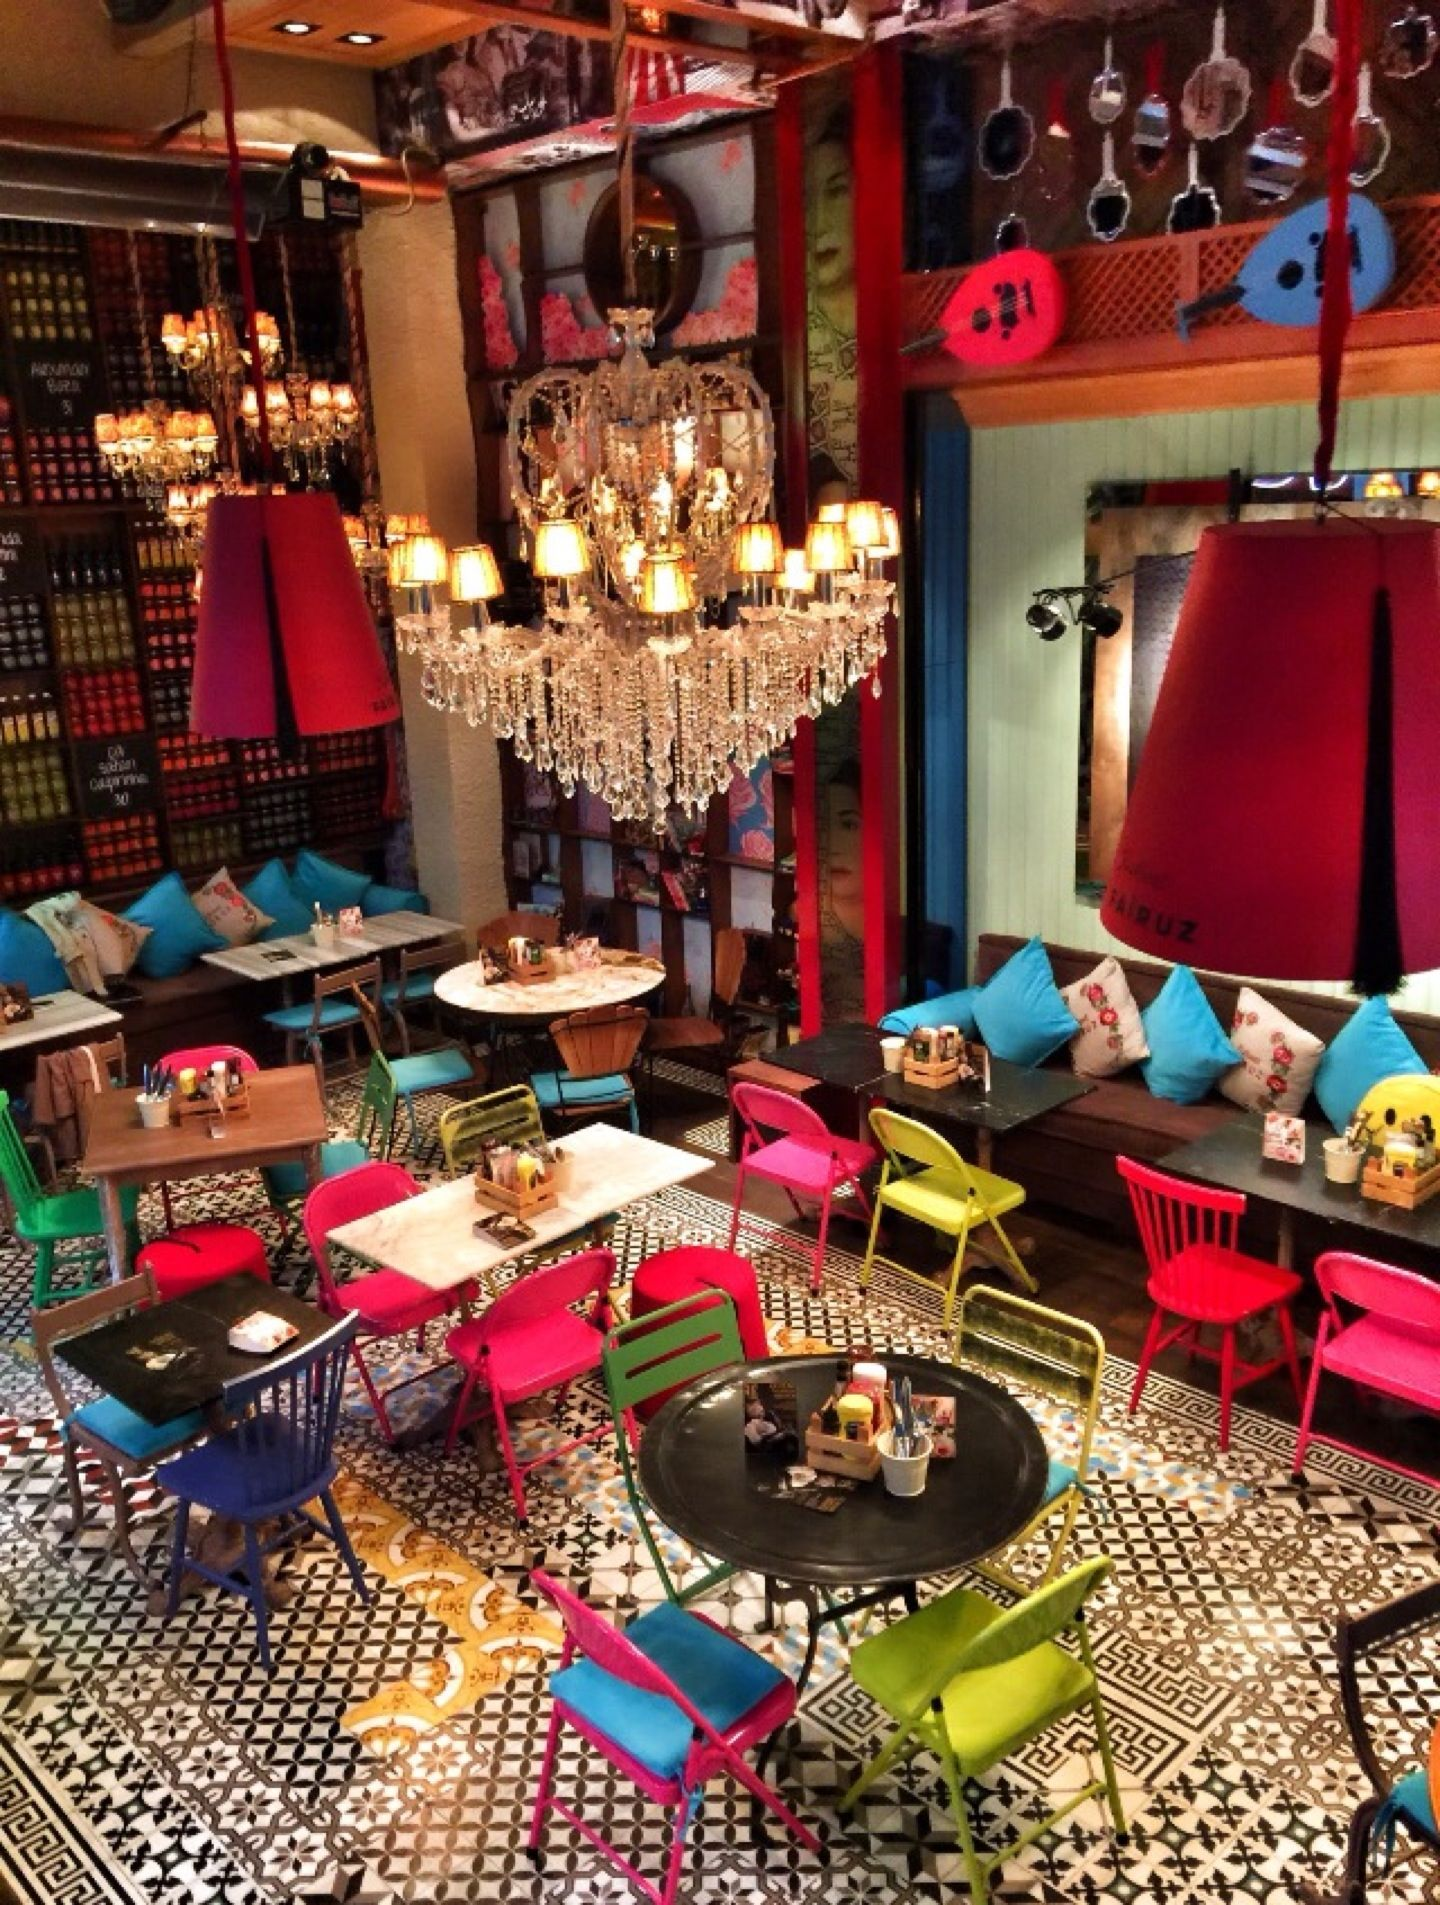 Opened next to the Louis Vuitton in Nişantaşı, this restaurant is famous with its fun decoration and Lebanese cuisine.